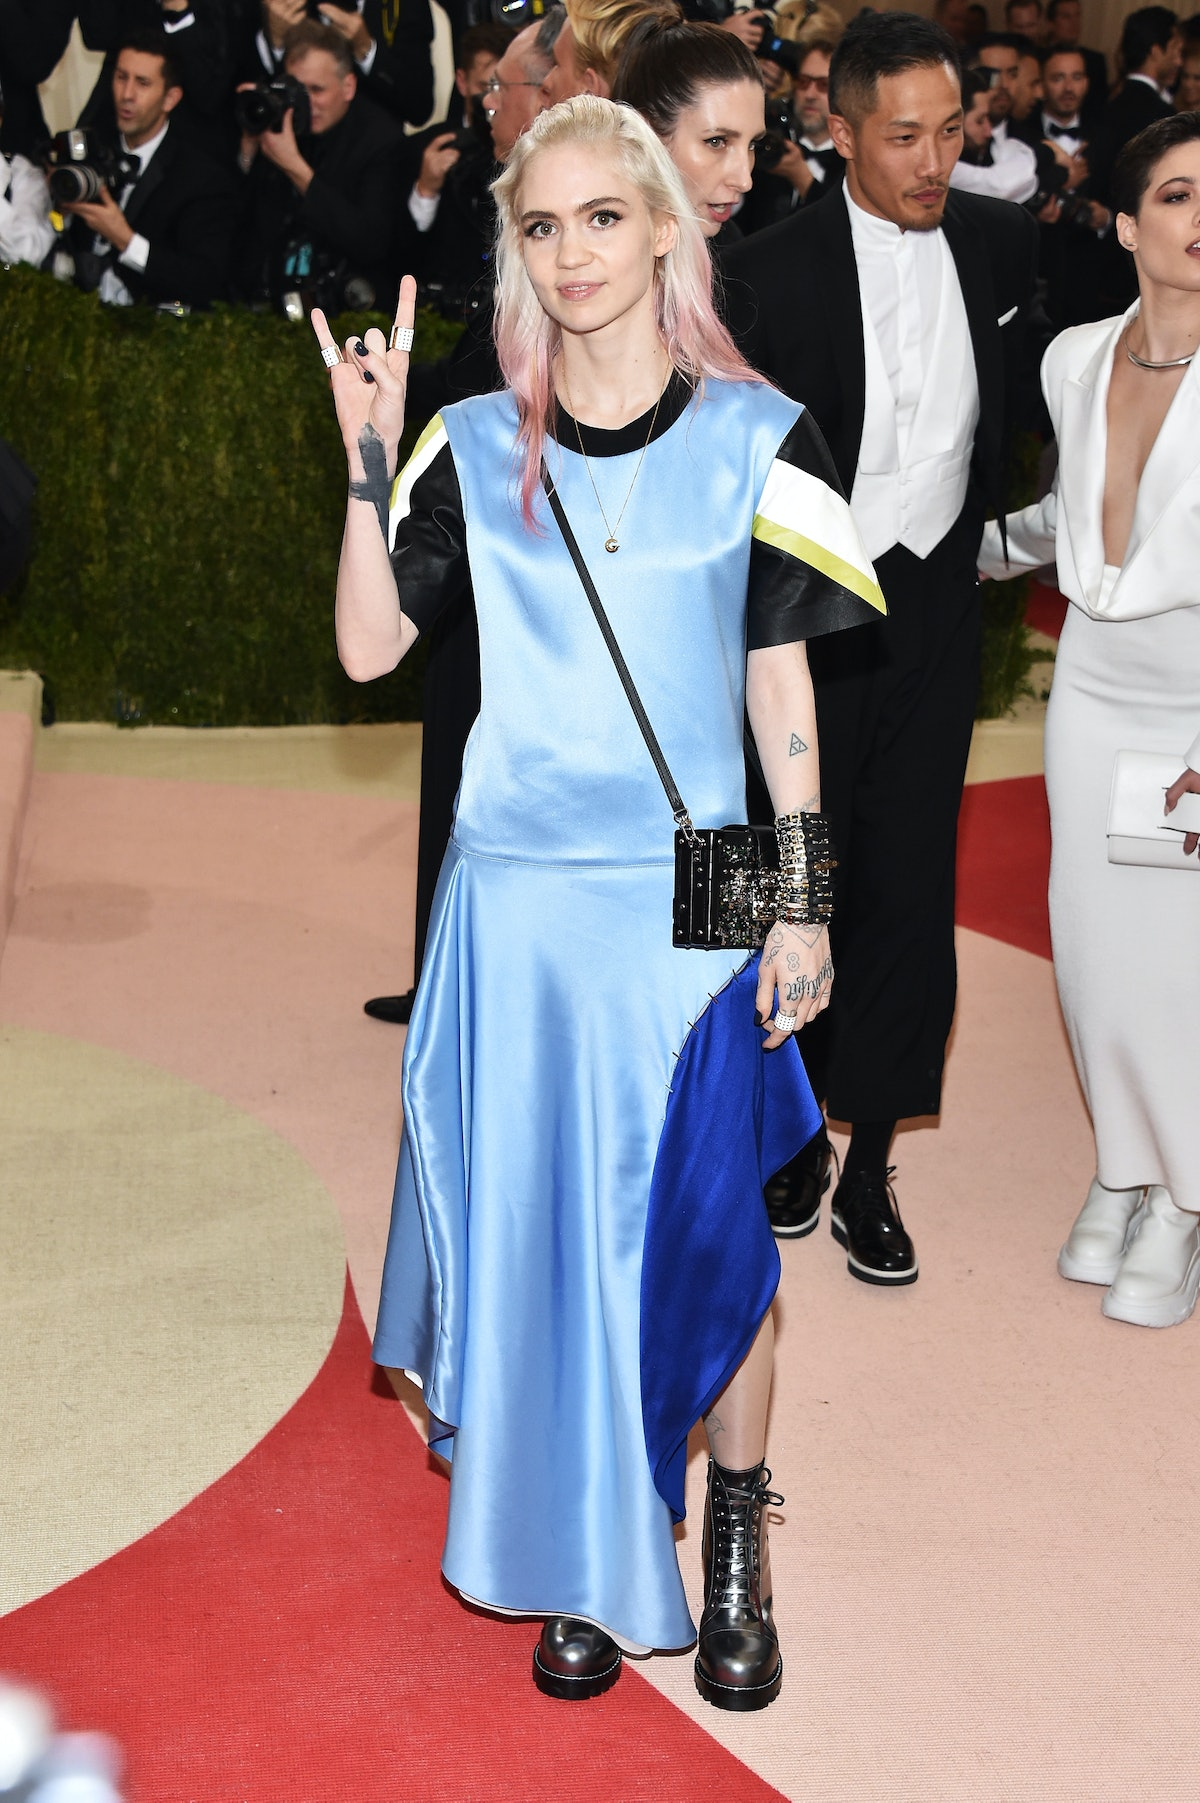 Iconoclasts of the 2016 Met Gala